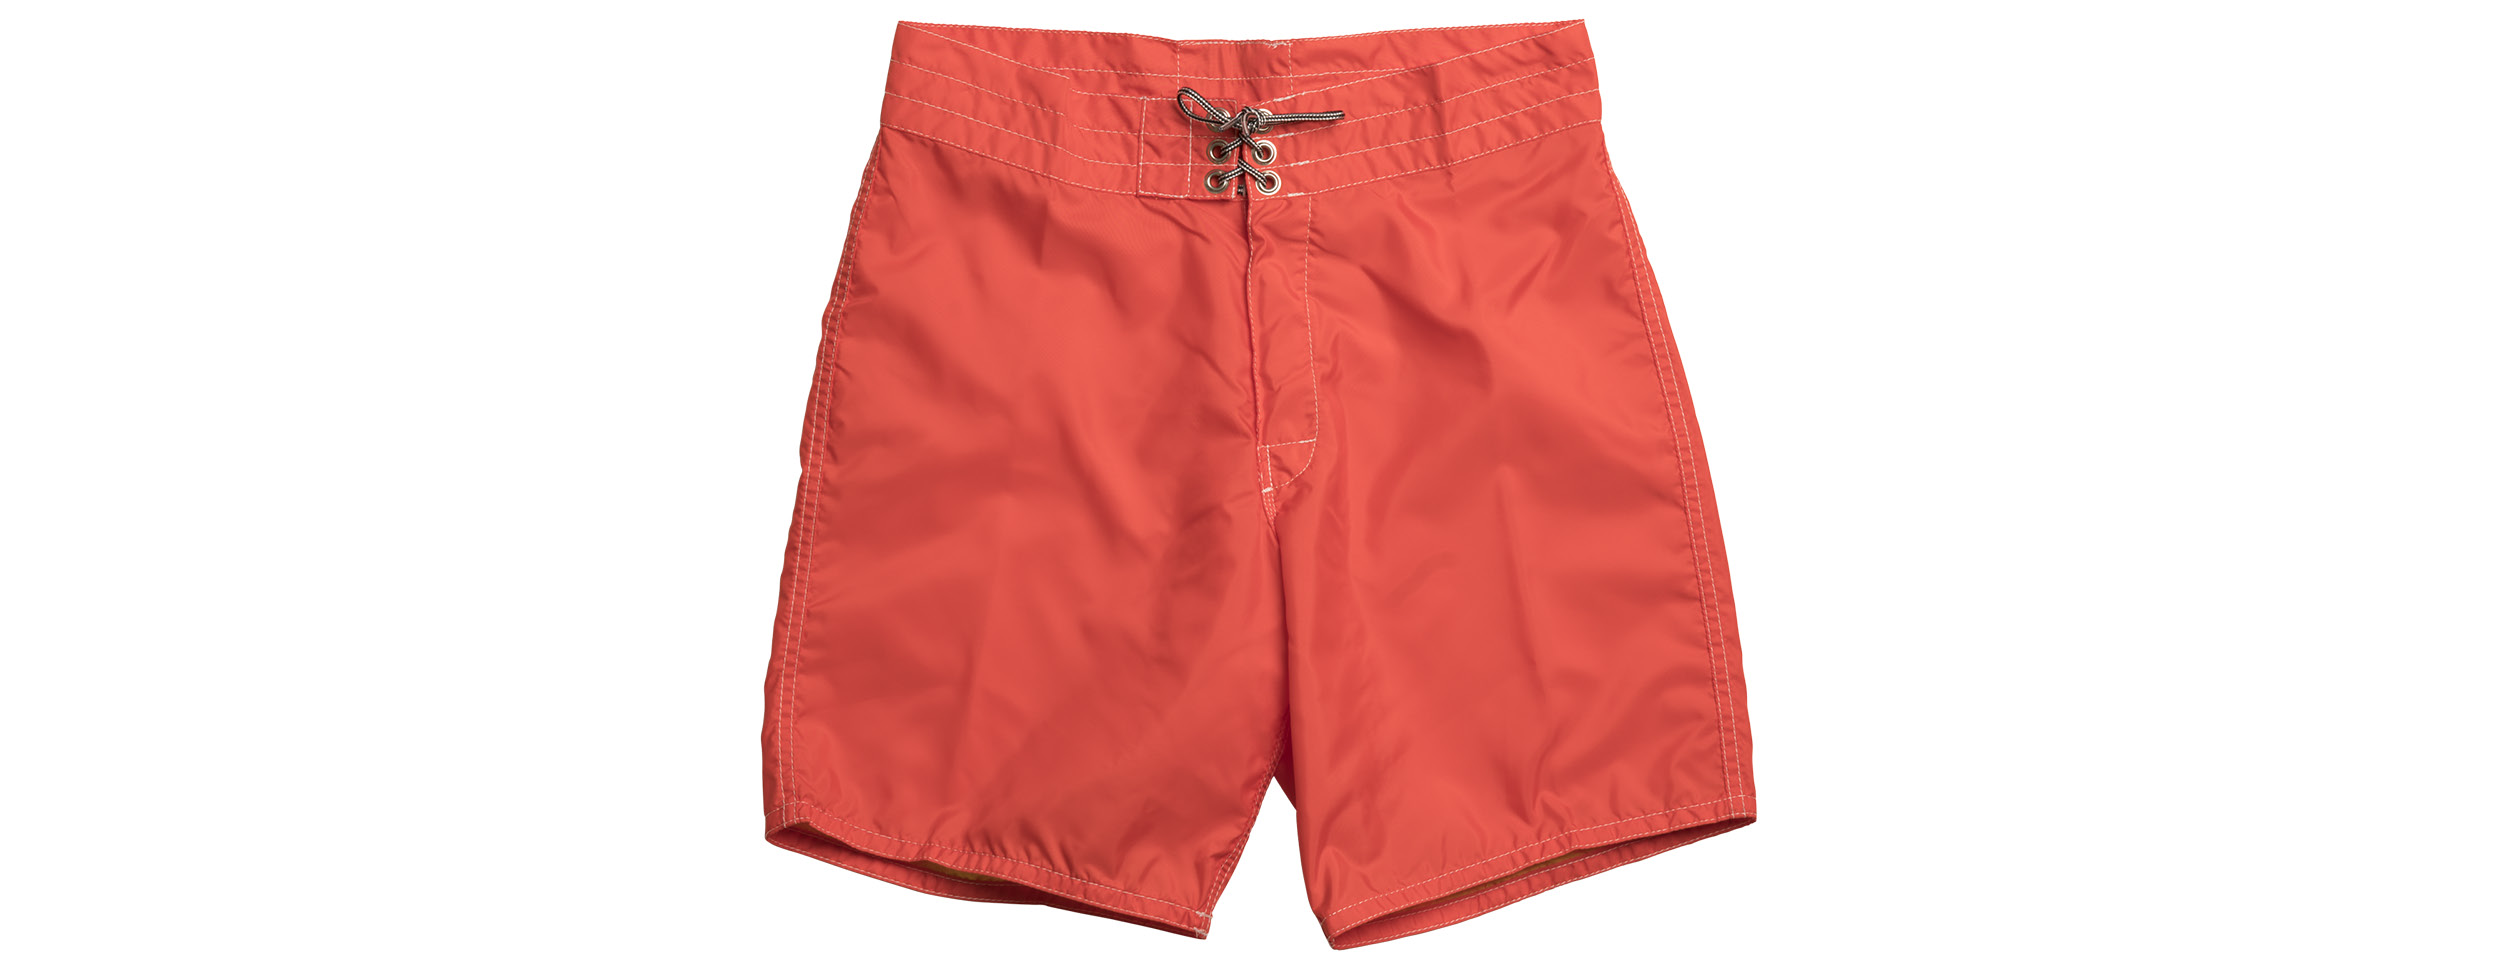 f5ec908002 Boardshort Spotlight: Best Birdwell Beach Britches Boardshorts ...